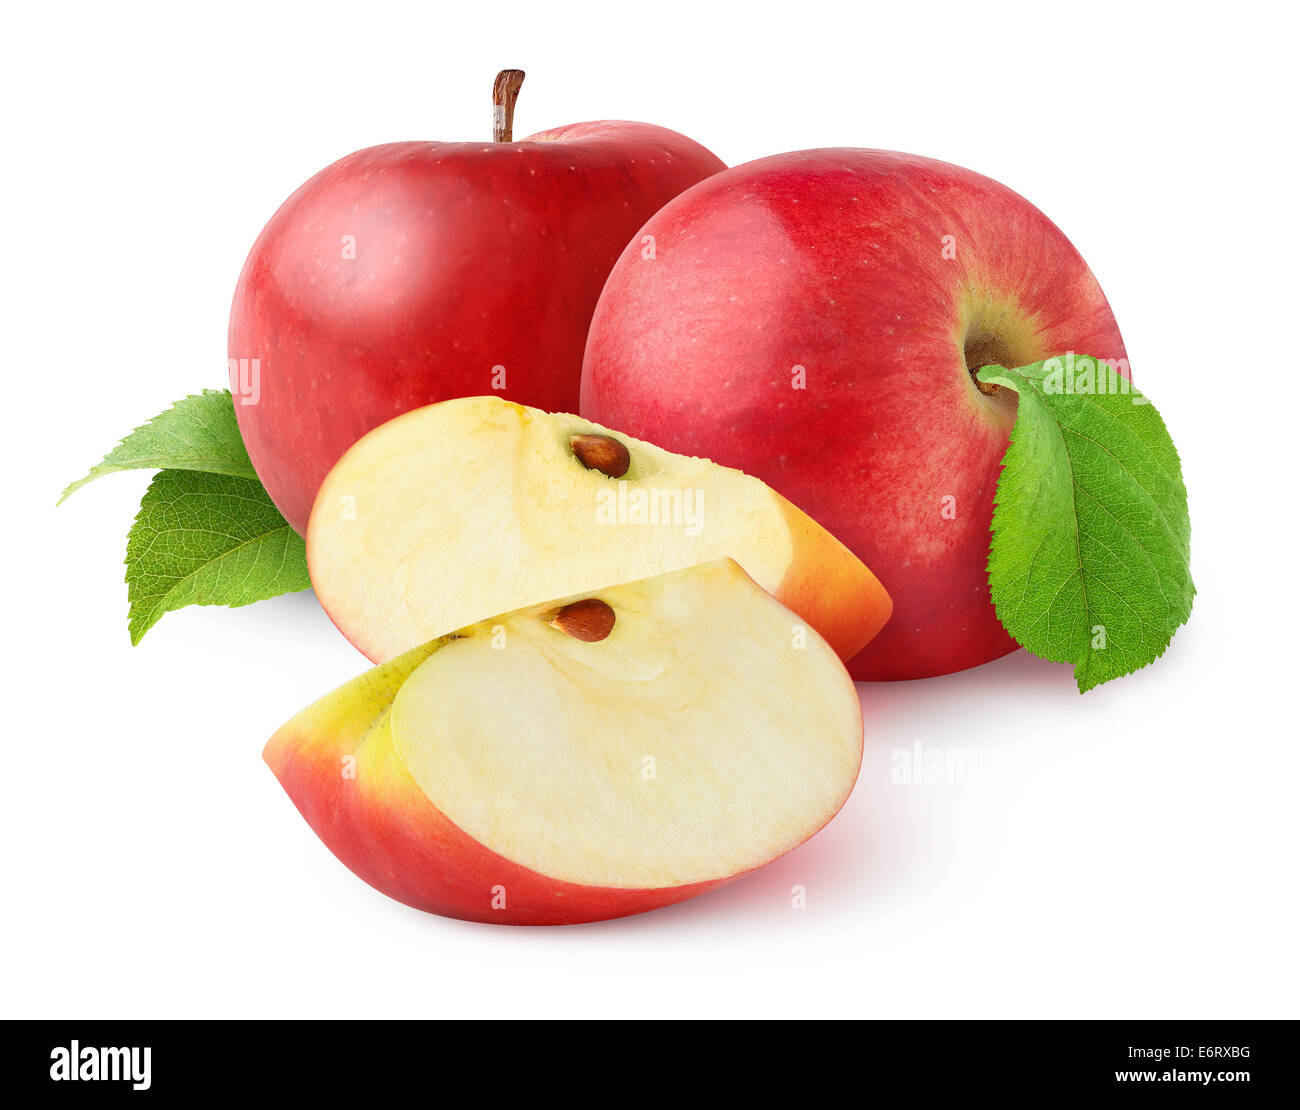 Red apples on white background - Stock Image